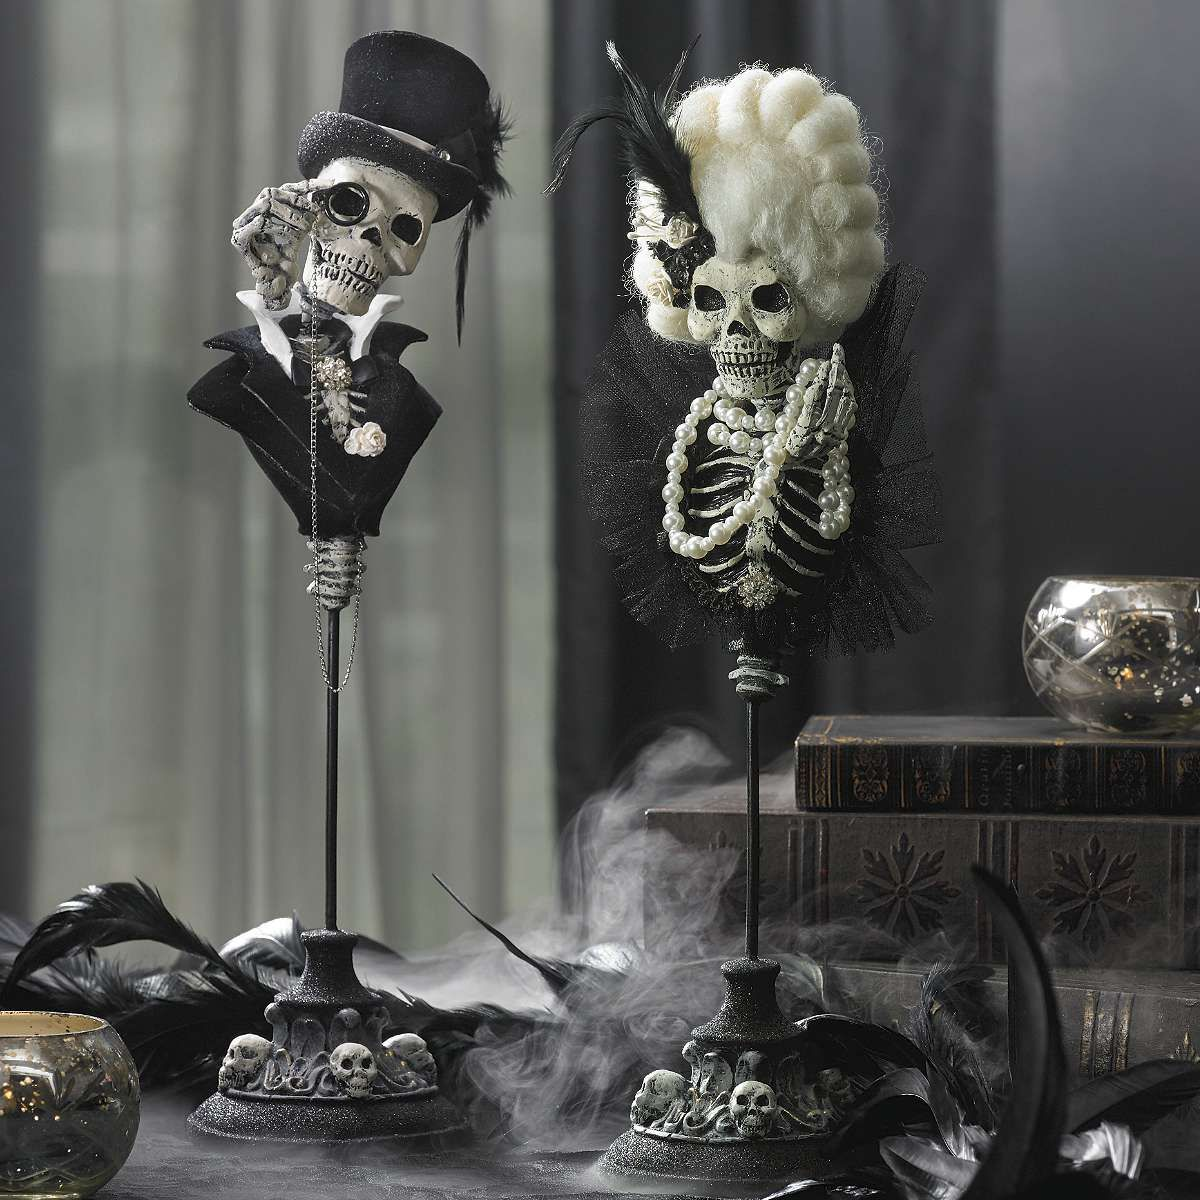 Originally Posted By A Little Odd Wow Hilda How Do You Think This Stuff Up Aww Shucks Just Happens Usu Halloween Decorations Halloween Art Halloween Mantel